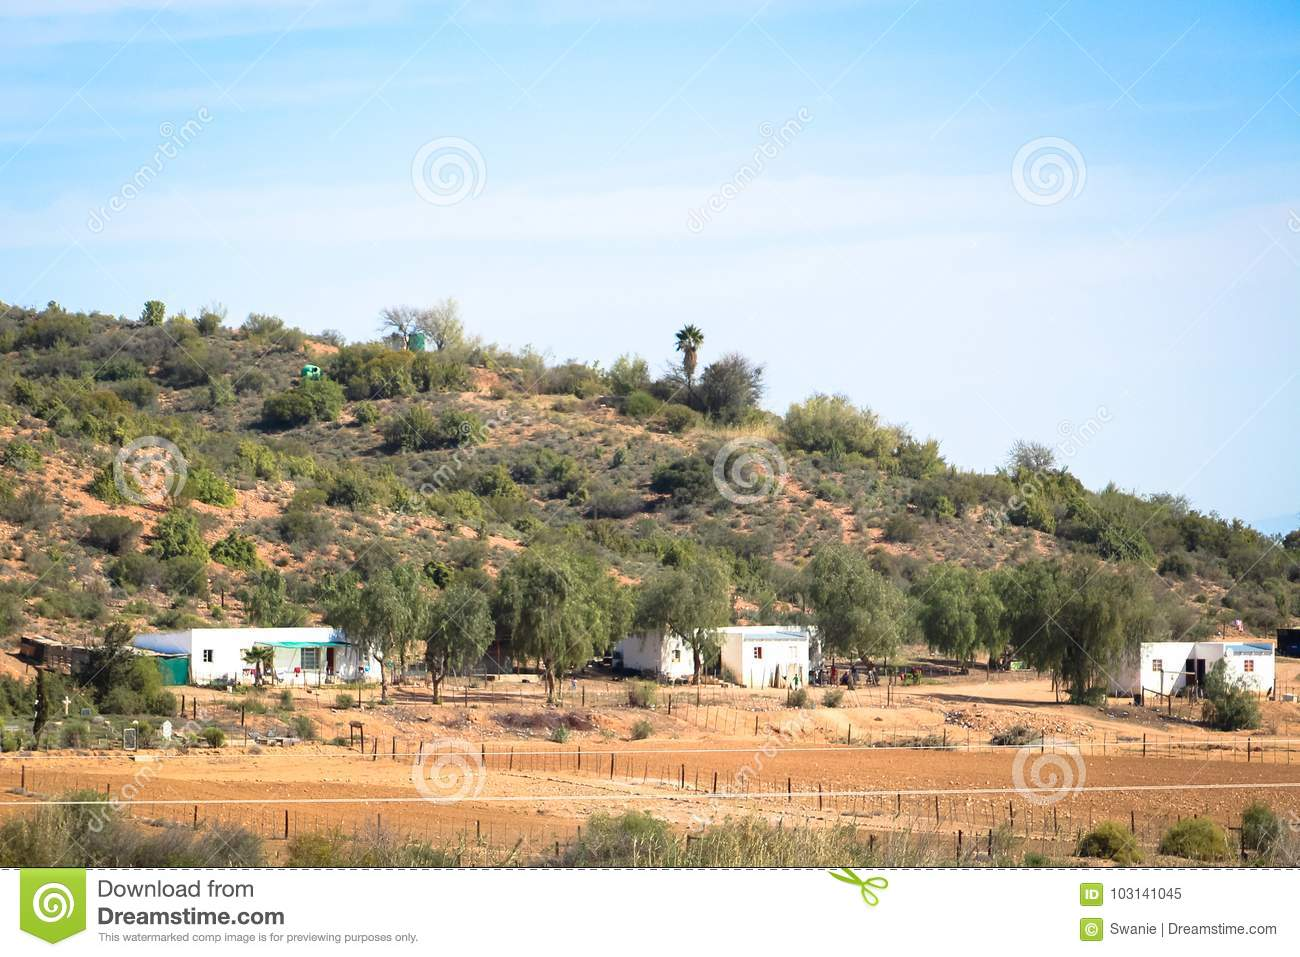 Accommodations South Africa Typical Farm Labourers Accommodation In South Africa Stock Image